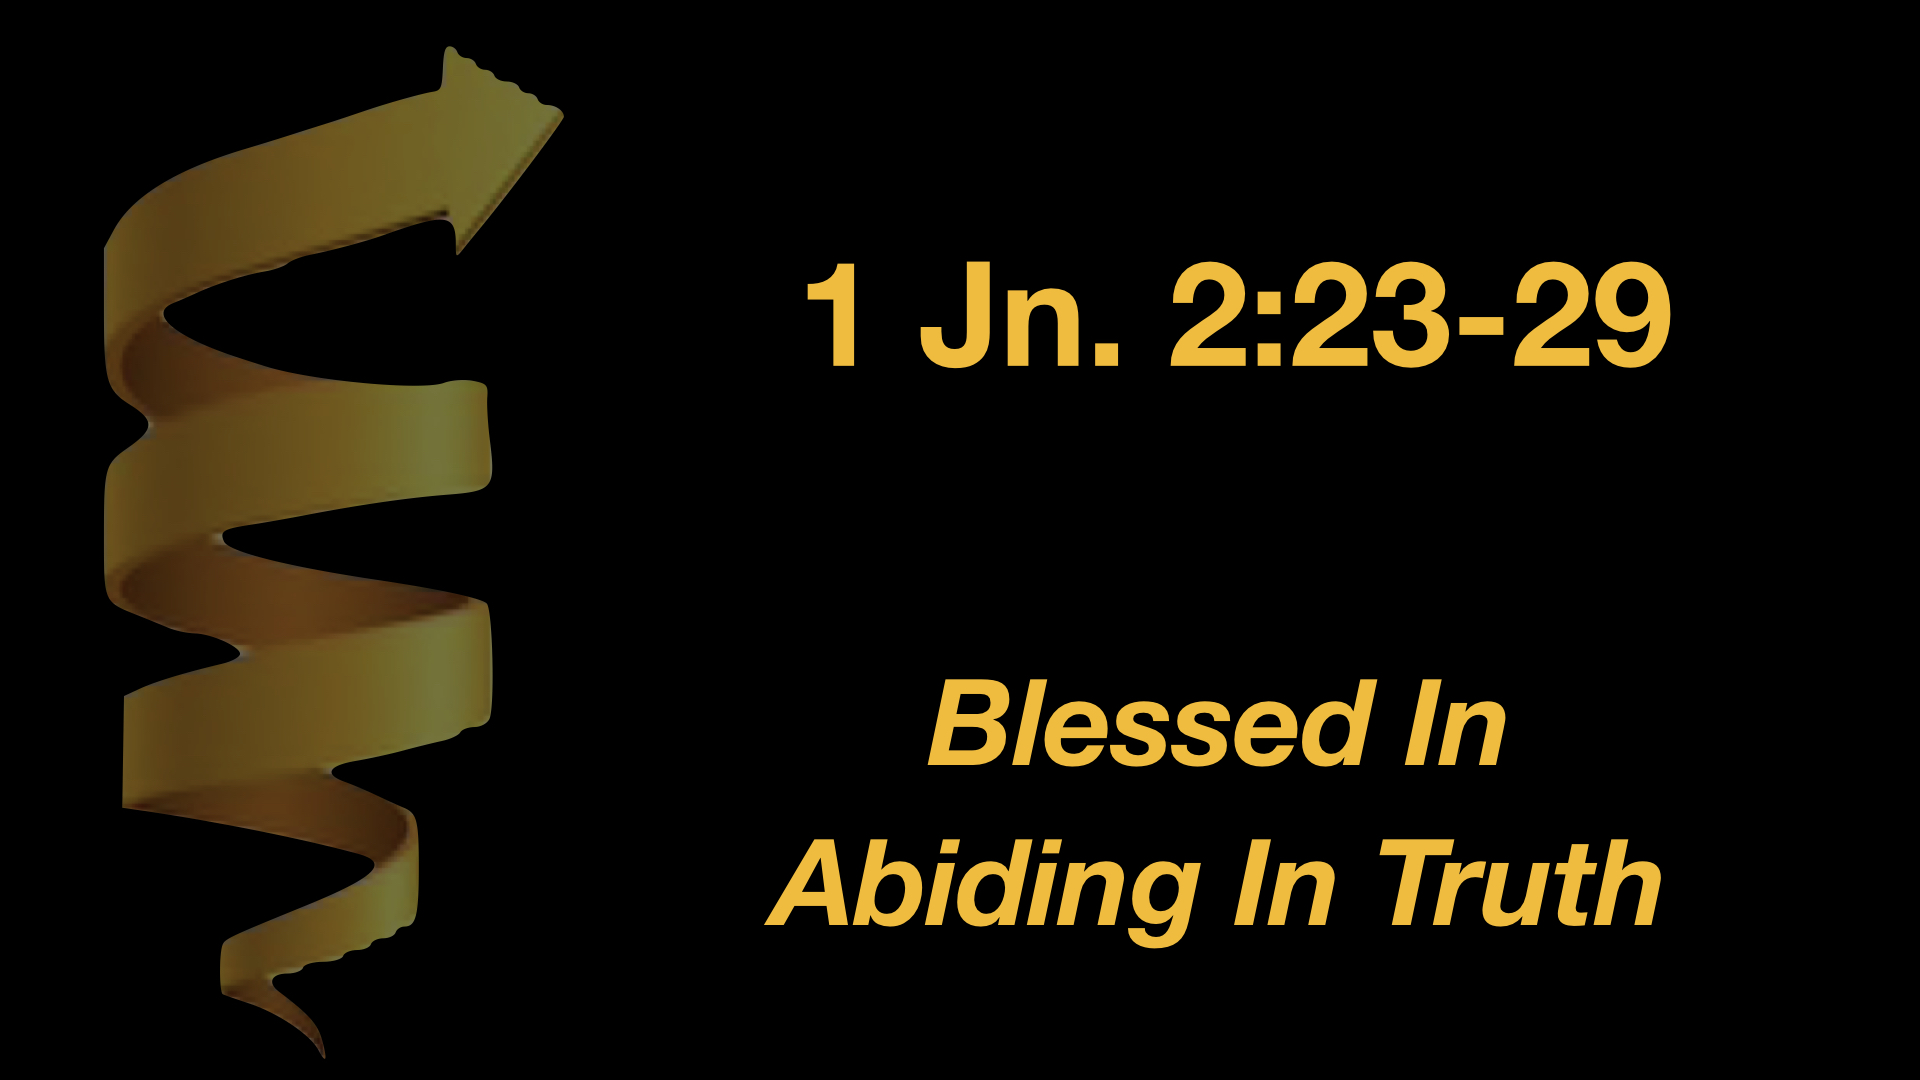 1 John 2;2-29 Blessed In Abiding In Truth WIDE.jpeg